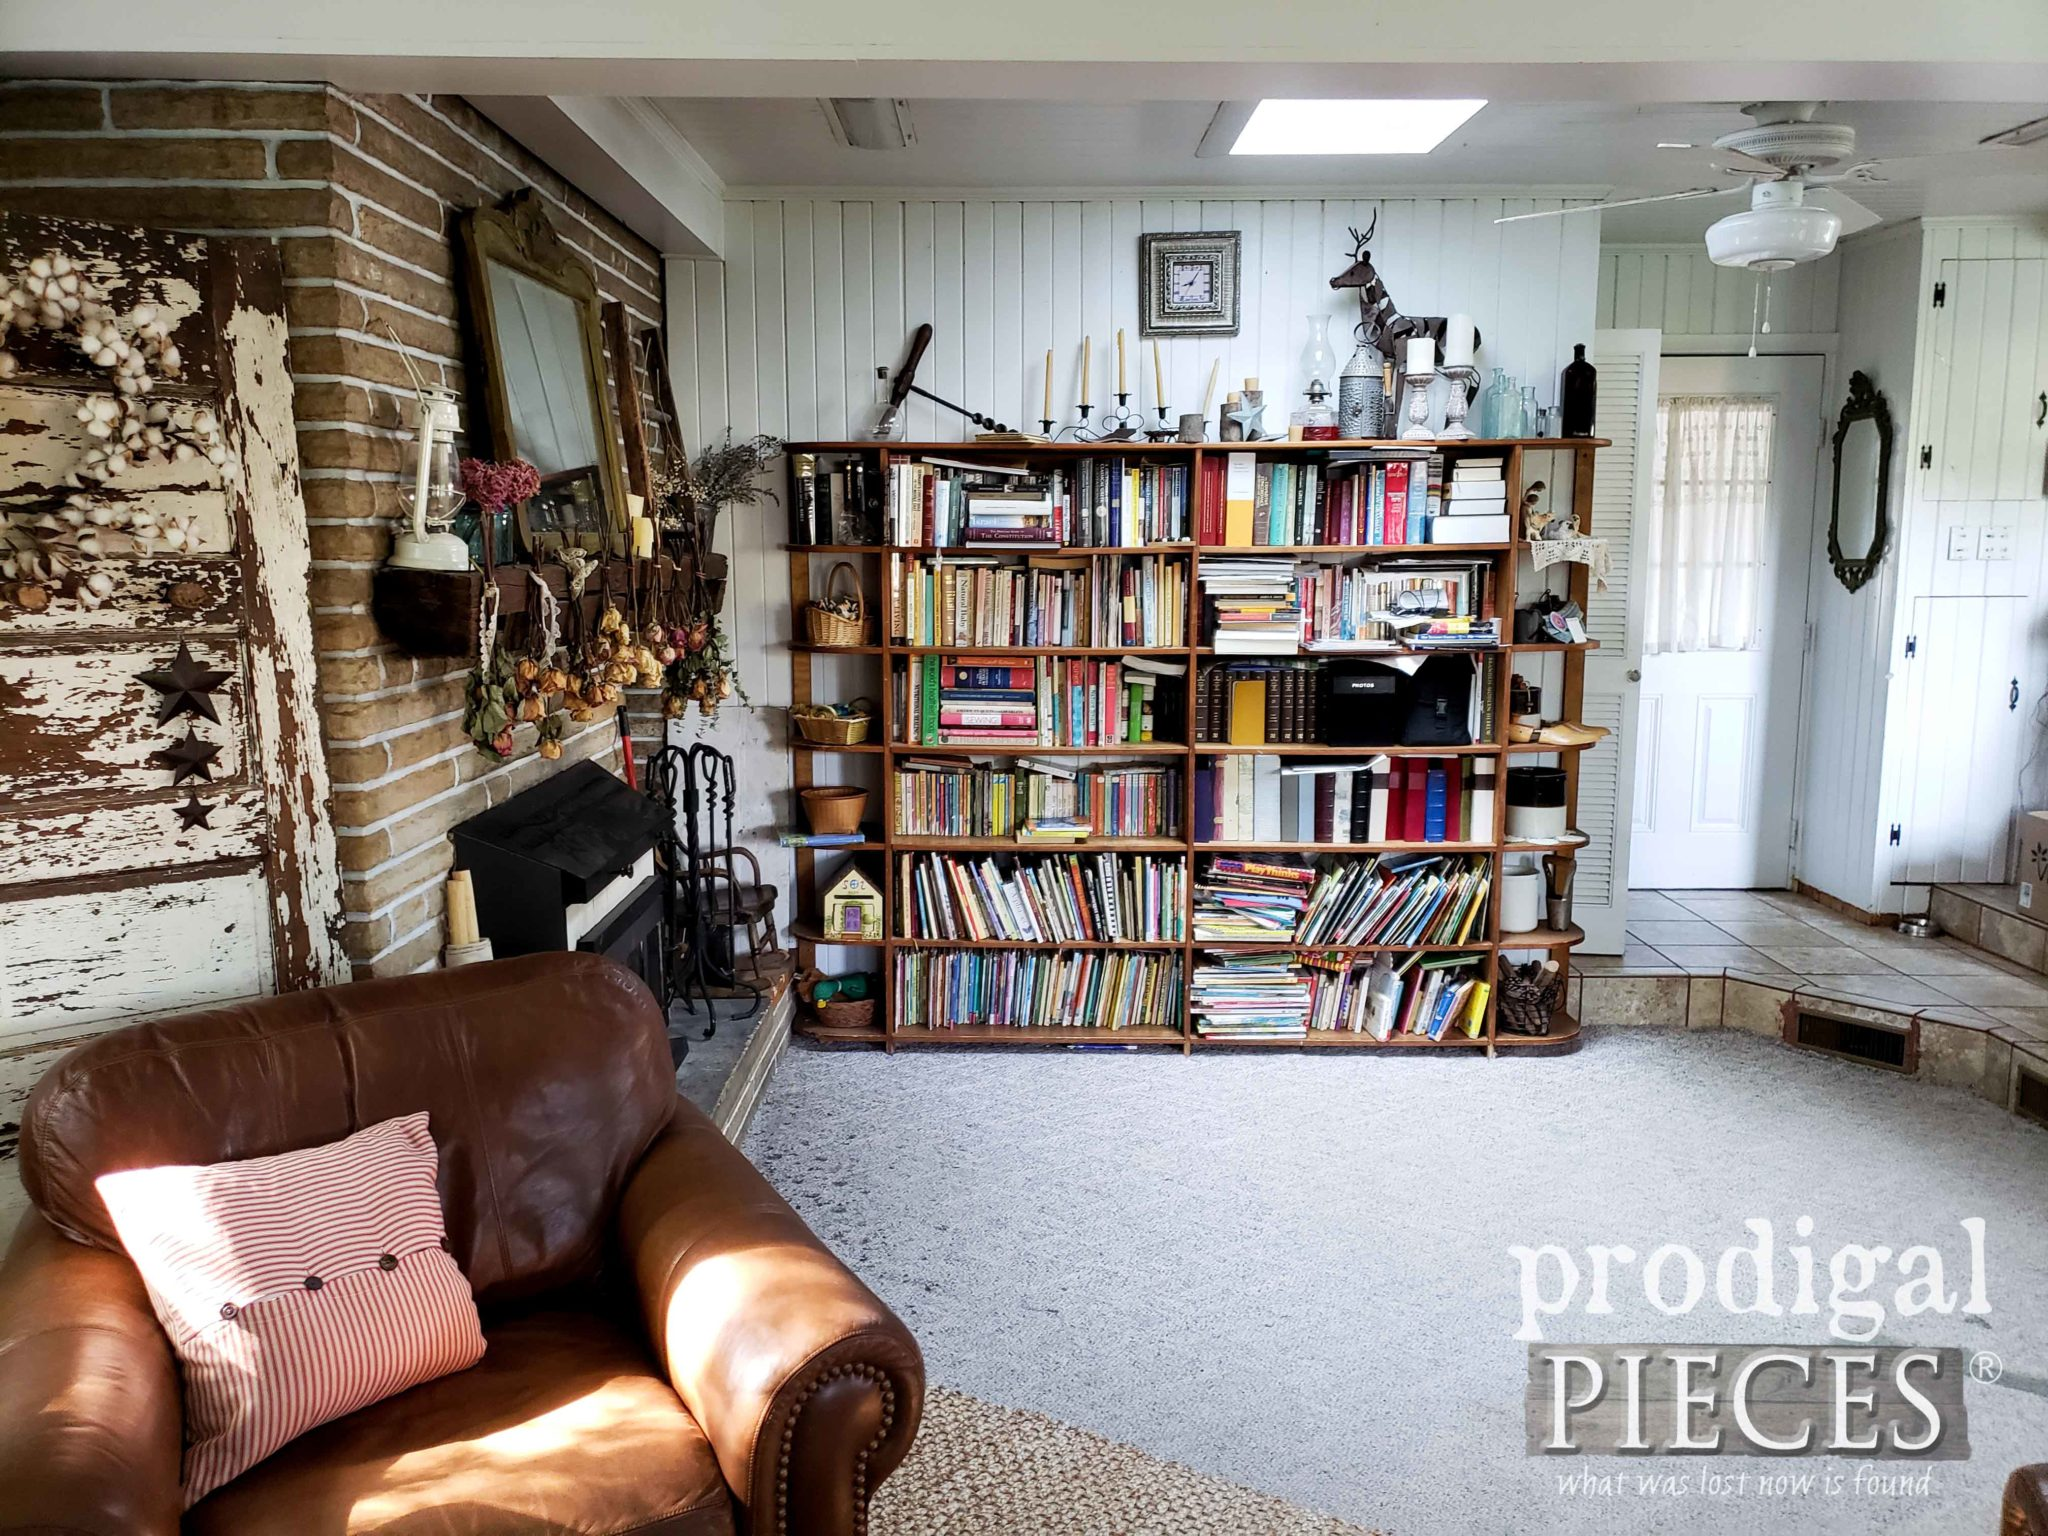 Built-In Bookshelves Before Family Room Remodel by Prodigal Pieces | prodigalpieces.com